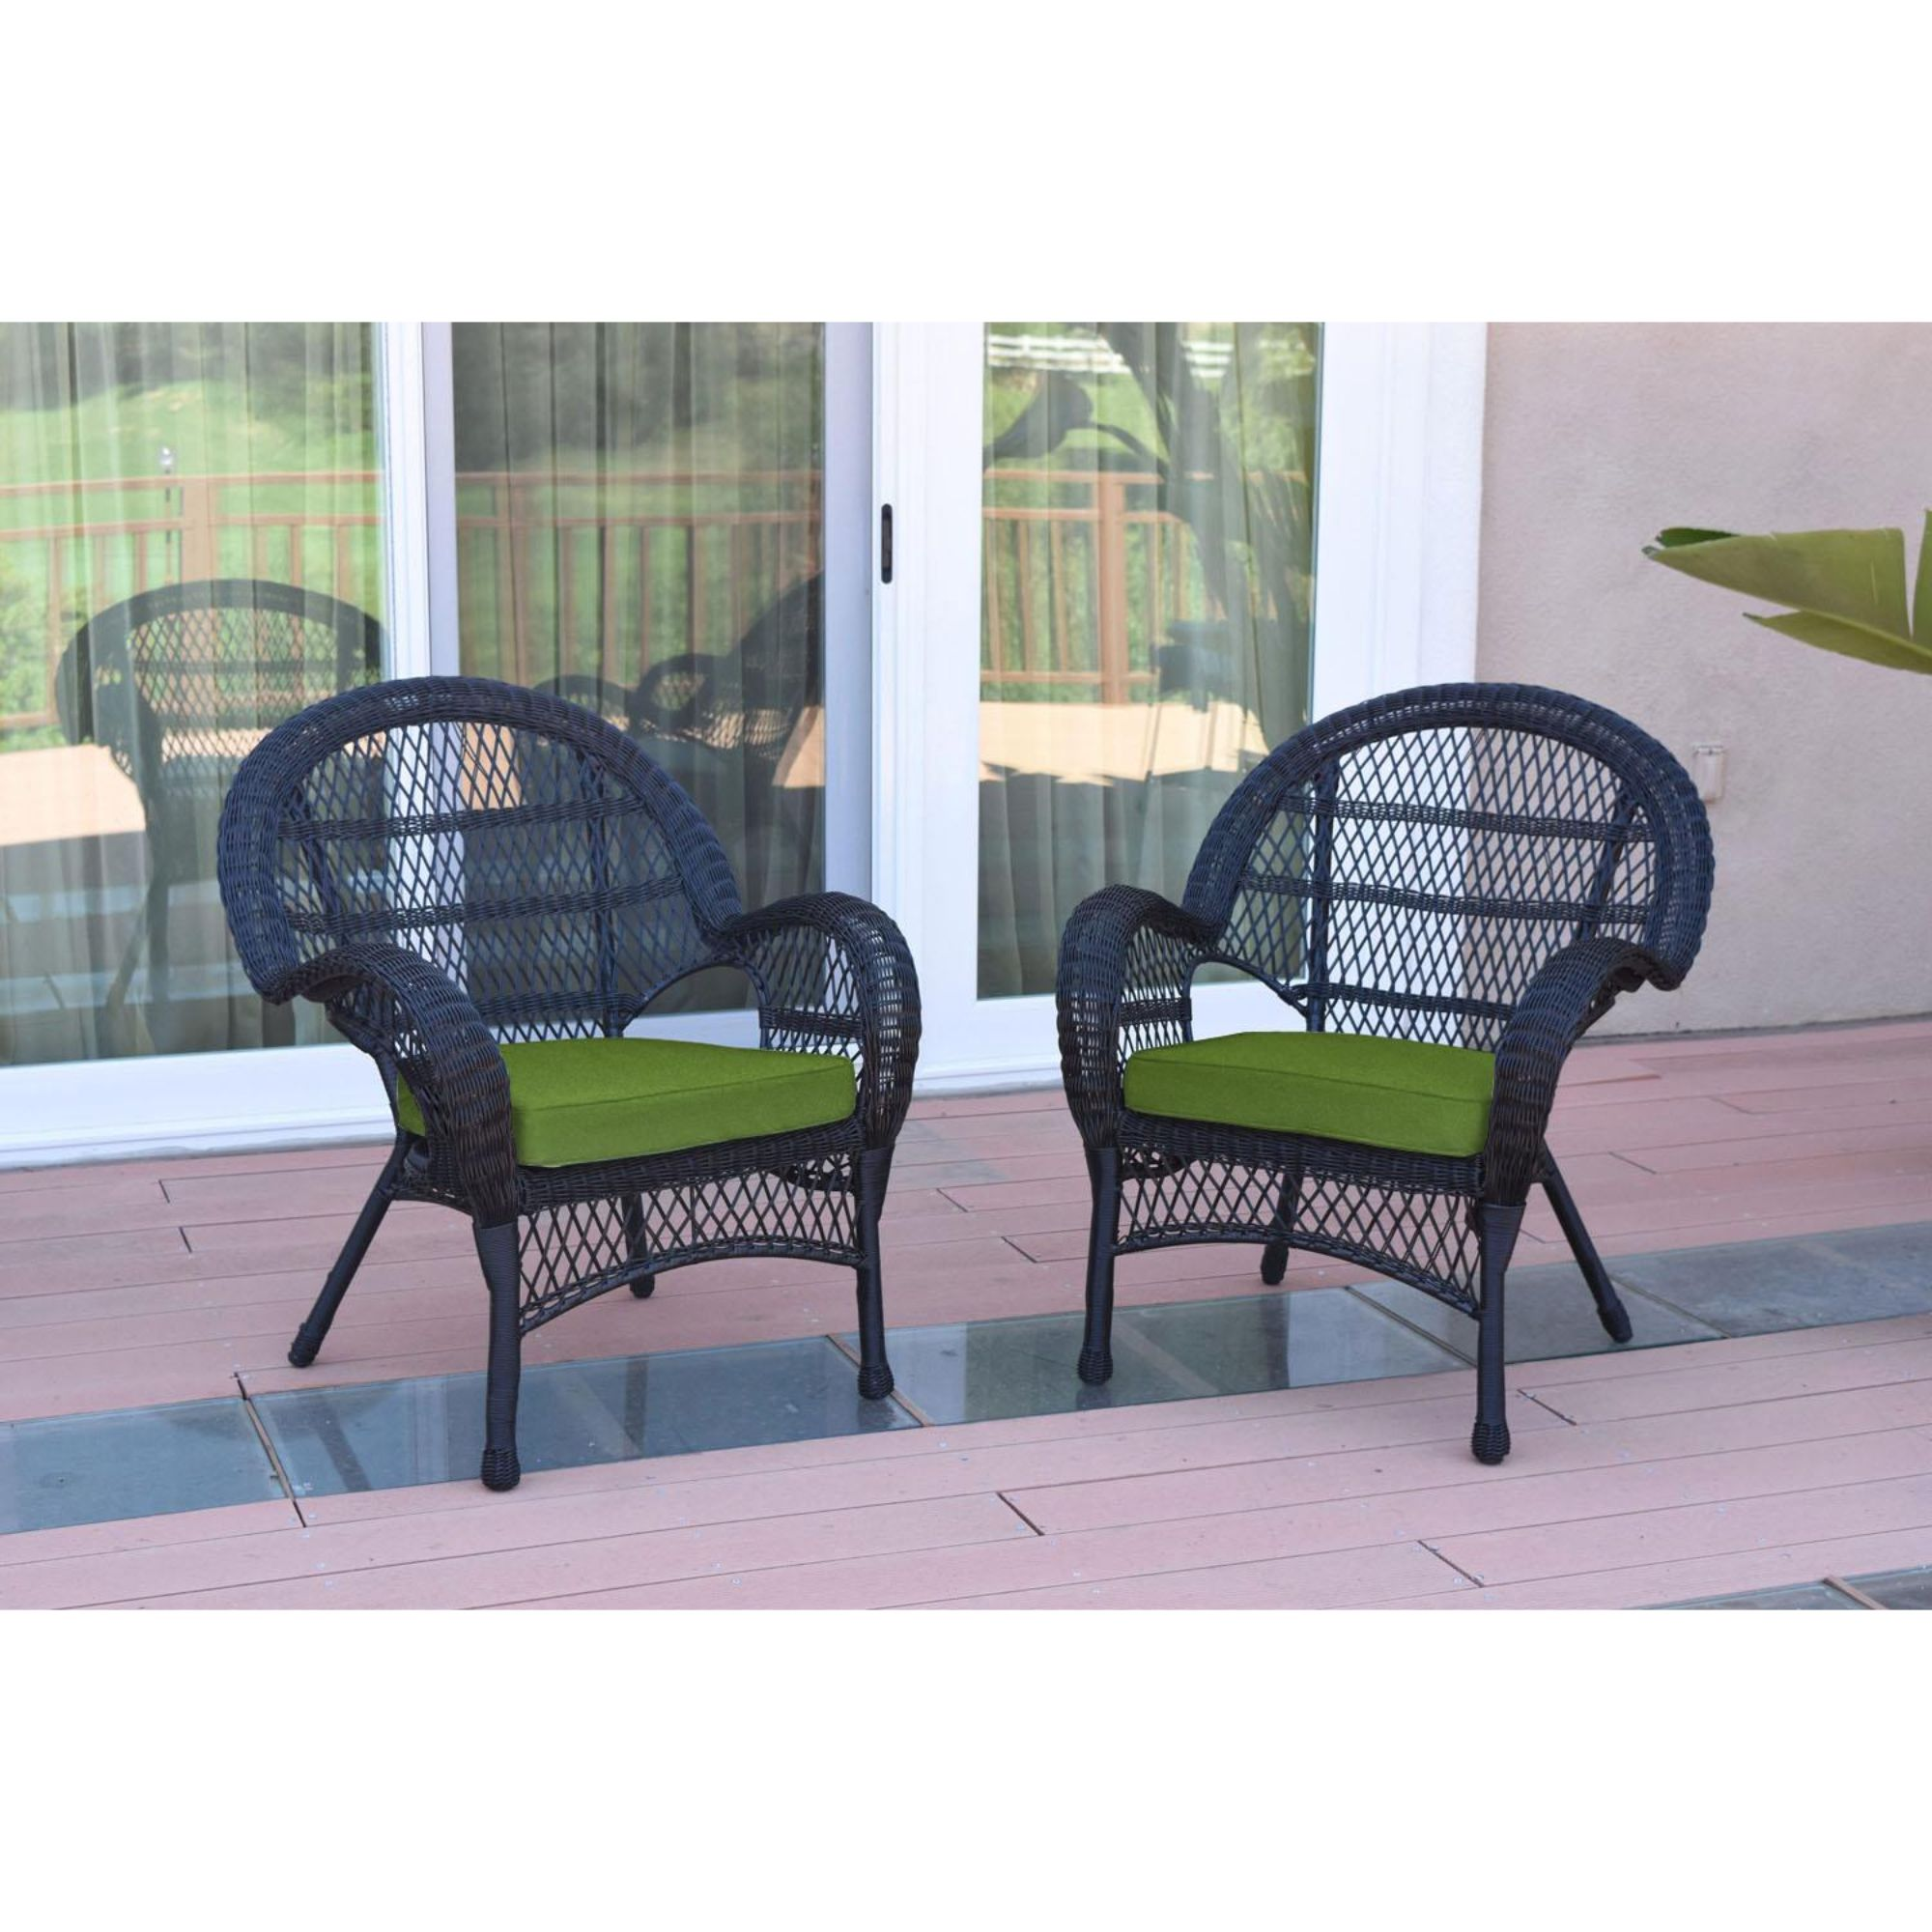 2 piece black wicker patio furniture with green cushion 36